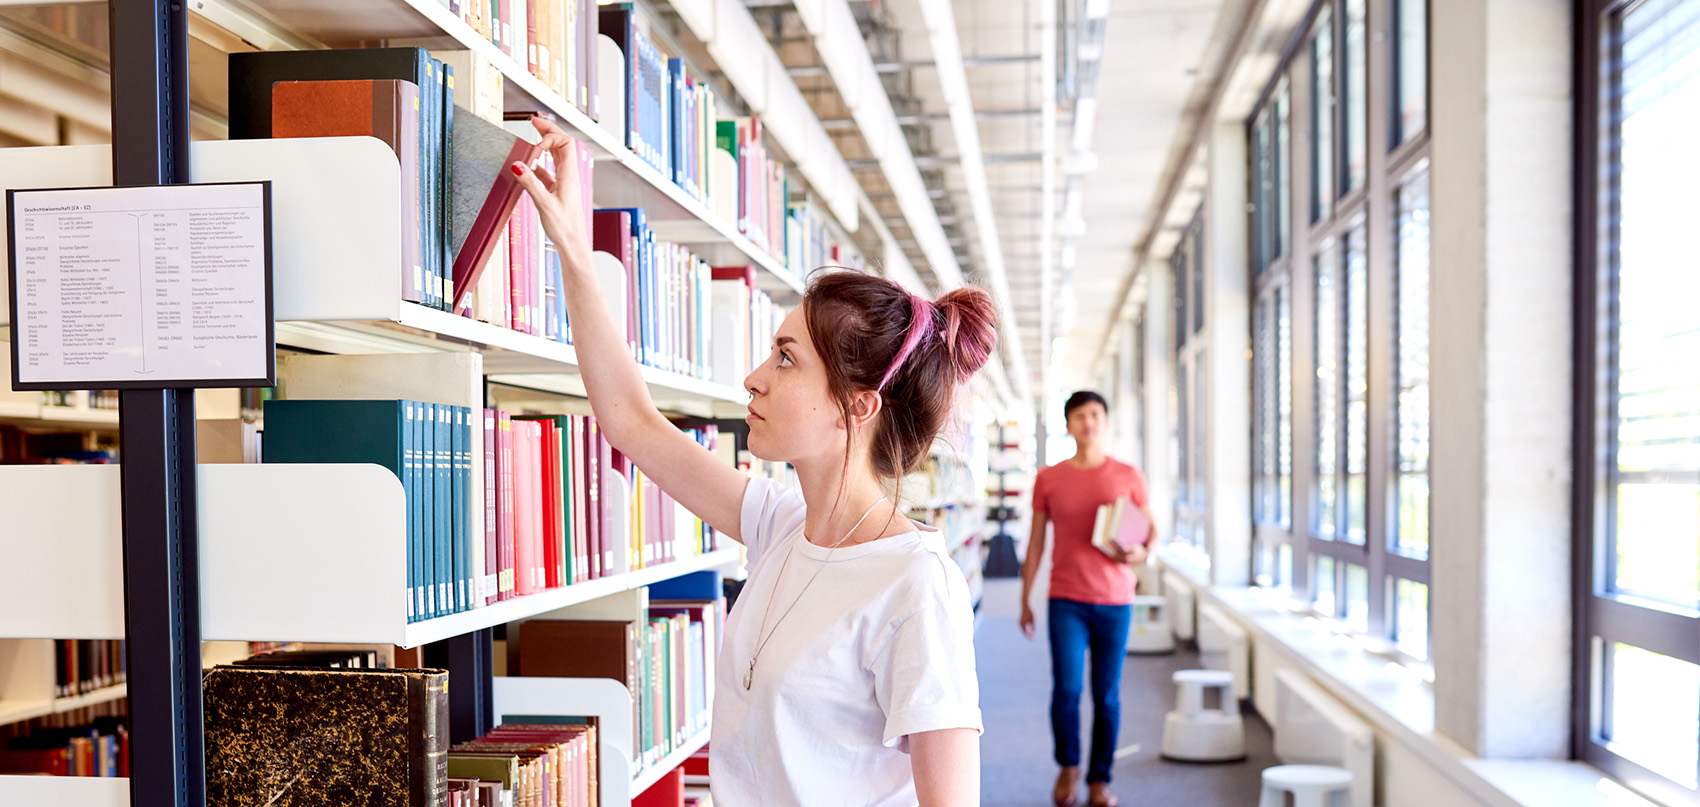 A students takes a book out of the library's shelf